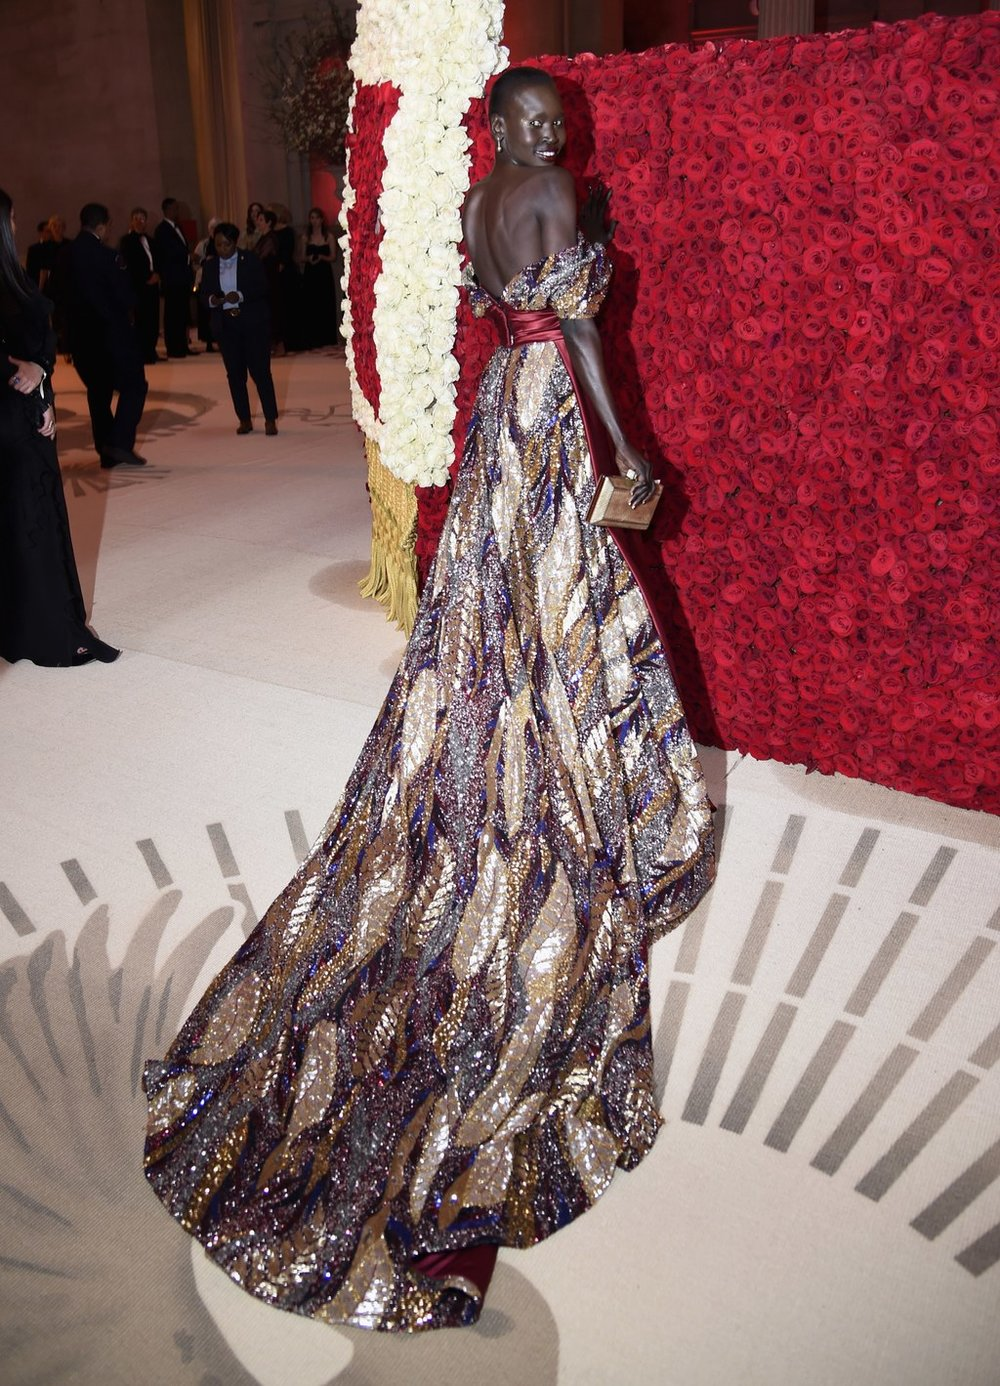 Alek Wek in H&M on carpet.jpg